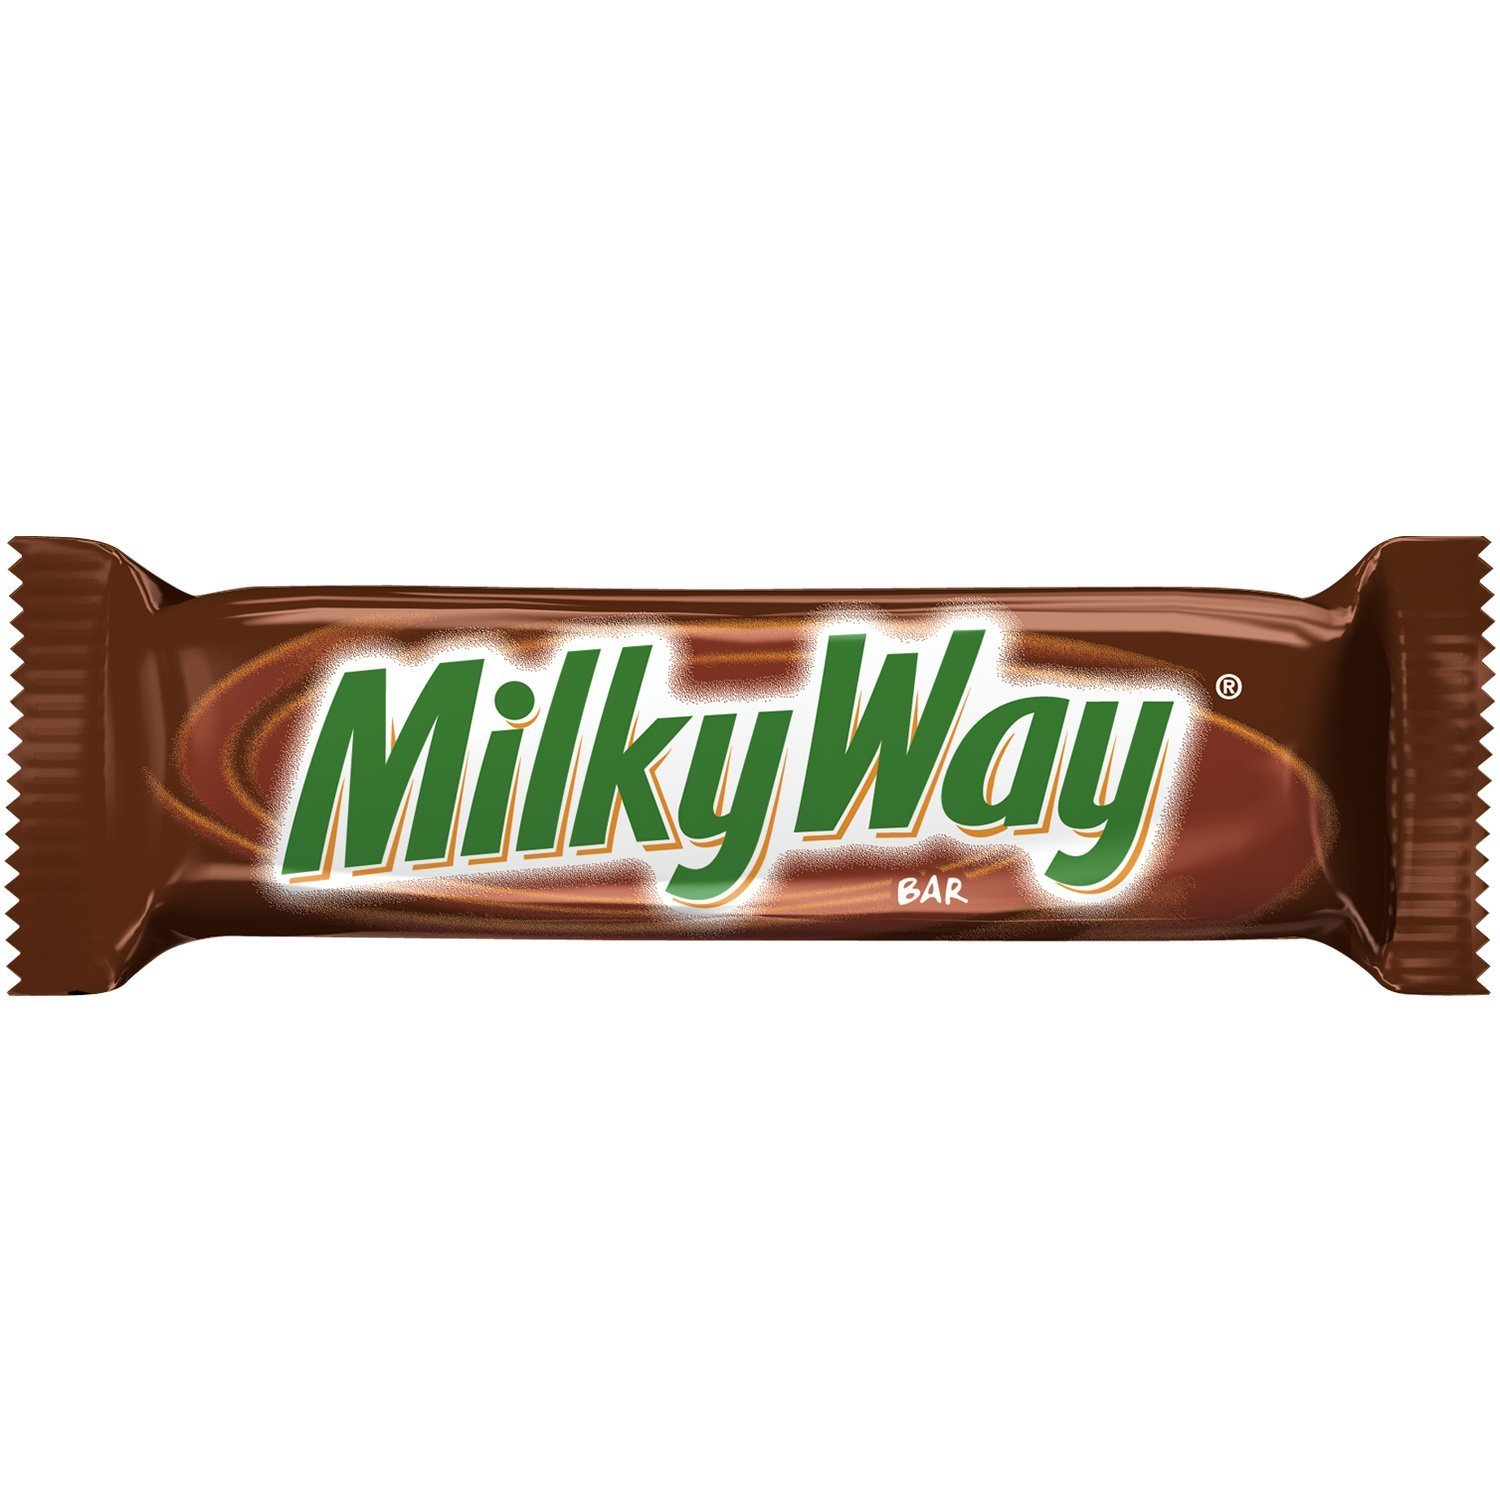 1923 milky way.jpg